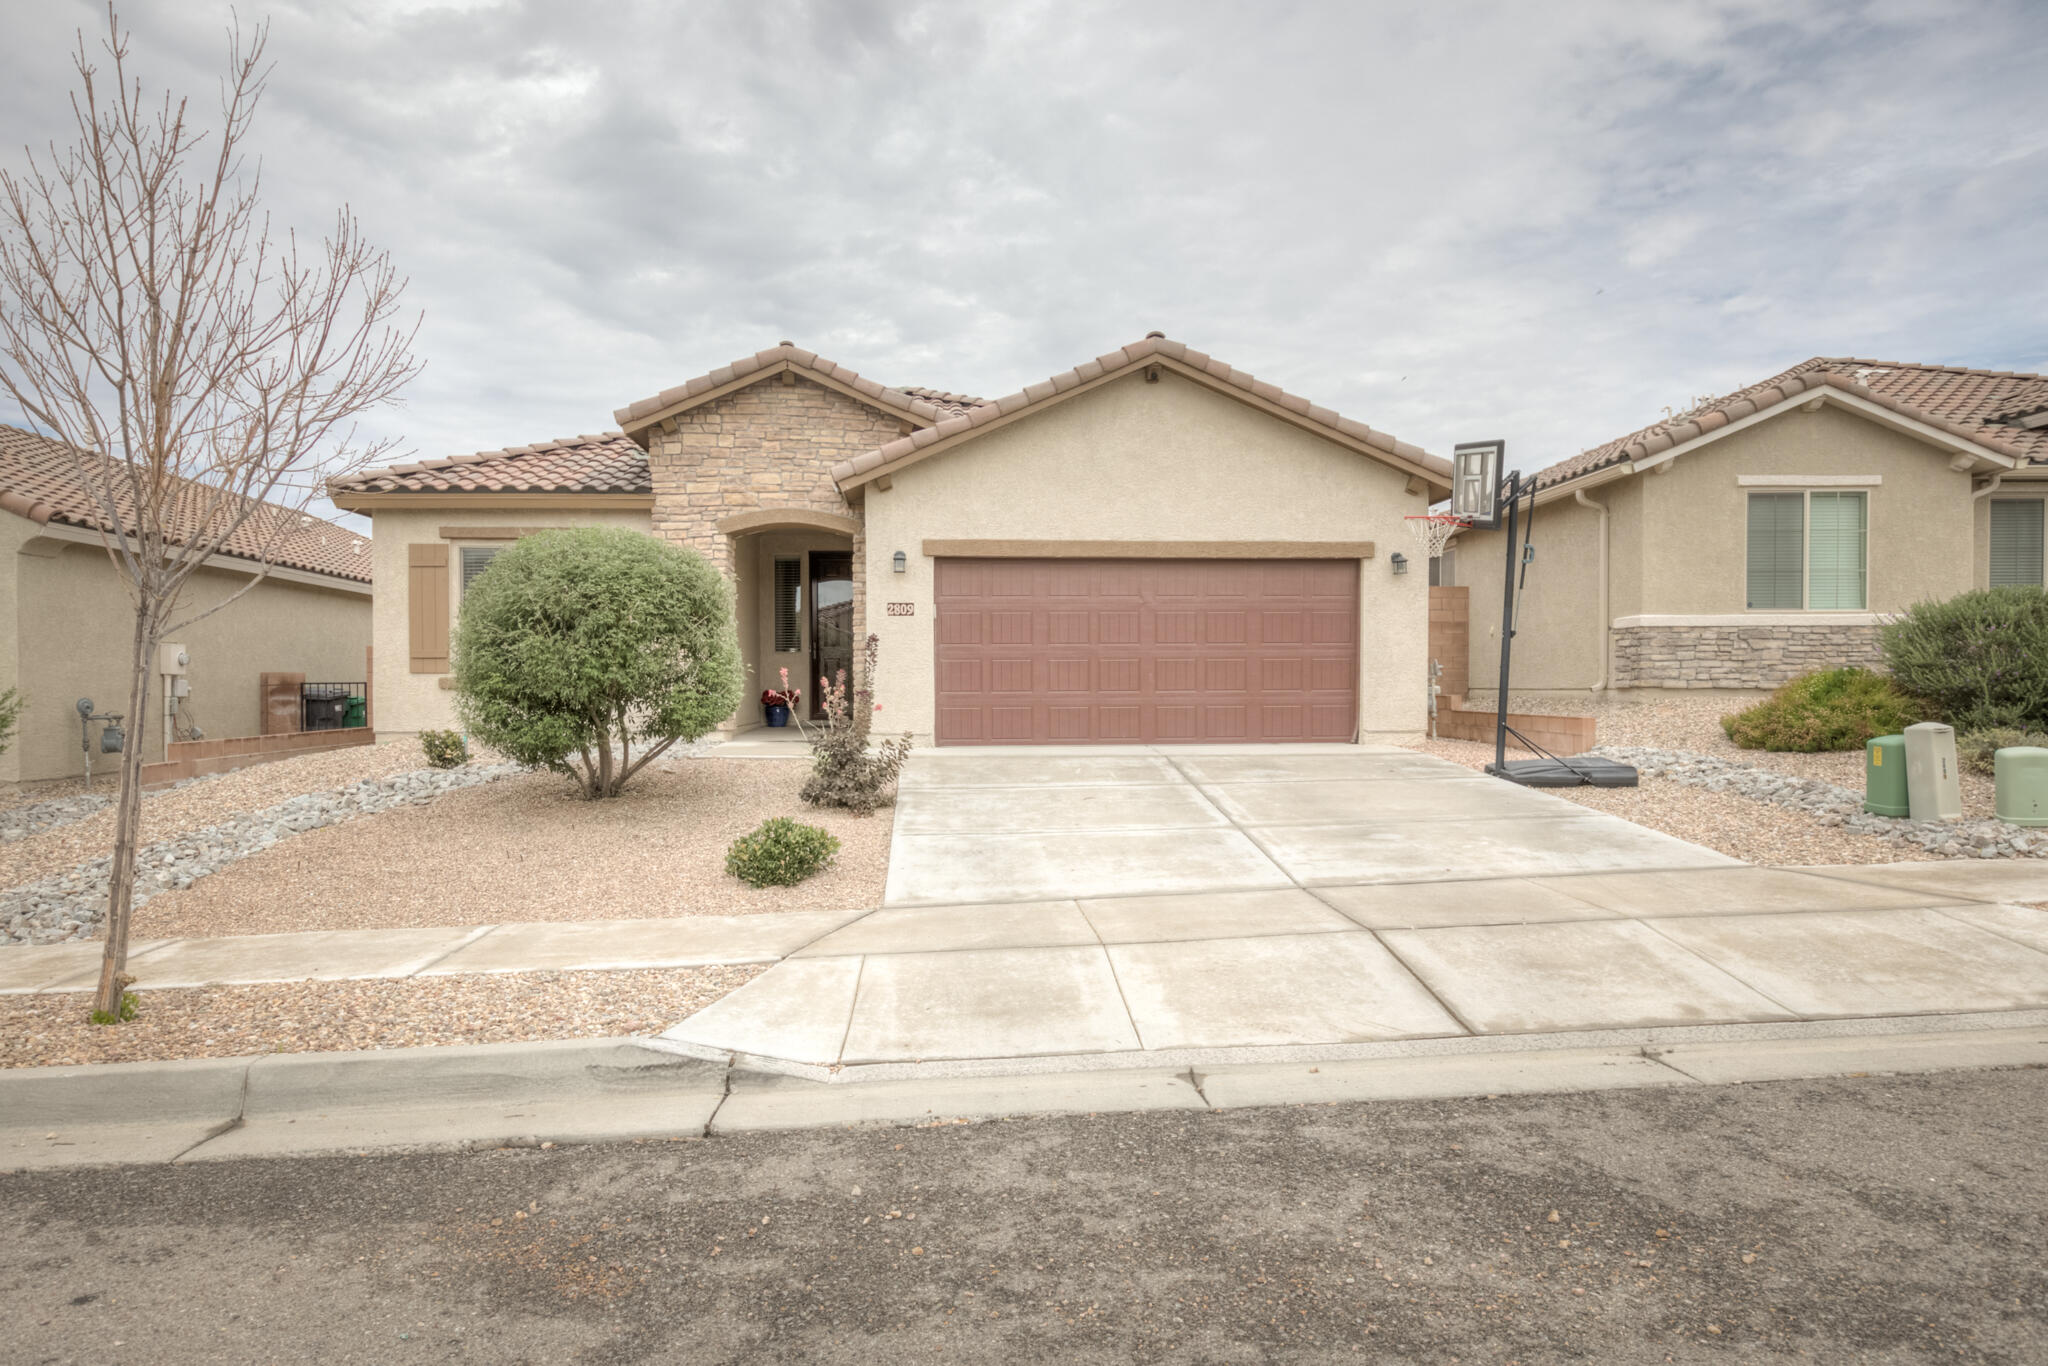 Welcome home to this charmer in Cabezon! This 4 bedroom home has it all.  The open layout is perfect for entertaining, enjoying family or just cooking dinner in the beautiful kitchen and being able to watch TV. The kitchen has granite counters, new hardware, over the island lighting, and tons of storage! The master suite is a spacious room with a double vanity, walk-in shower and closet. Enjoy the great sized backyard that is a blank slate ready for you to make your own. This home is walking distance to schools, parks and conveniently located close to shopping and restaurants.